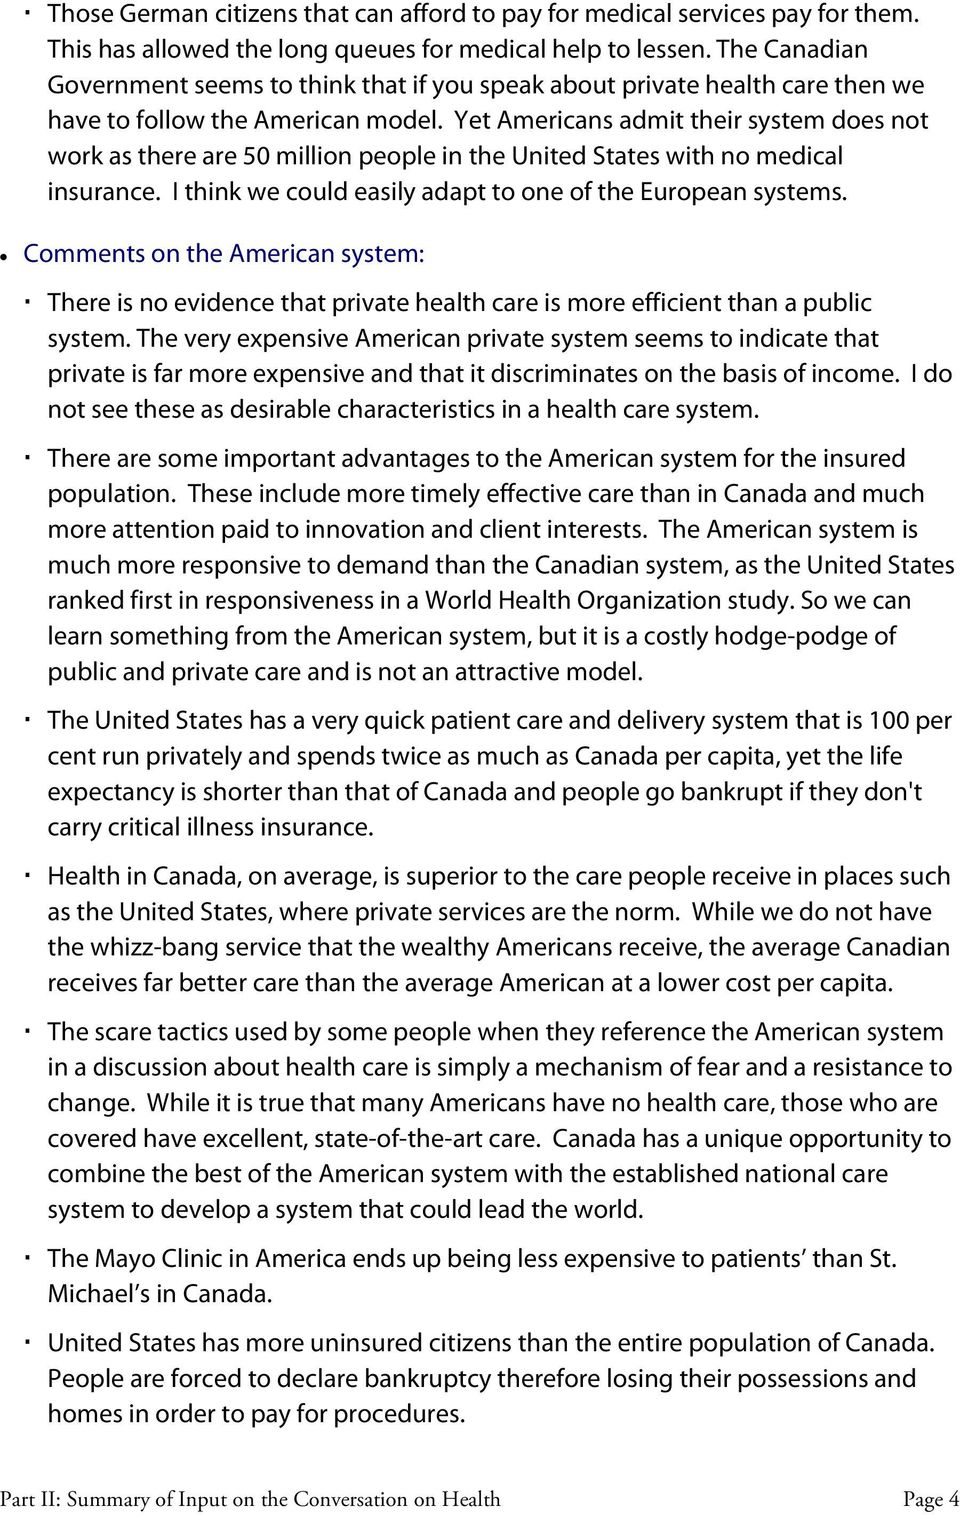 Yet Americans admit their system does not work as there are 50 million people in the United States with no medical insurance. I think we could easily adapt to one of the European systems.